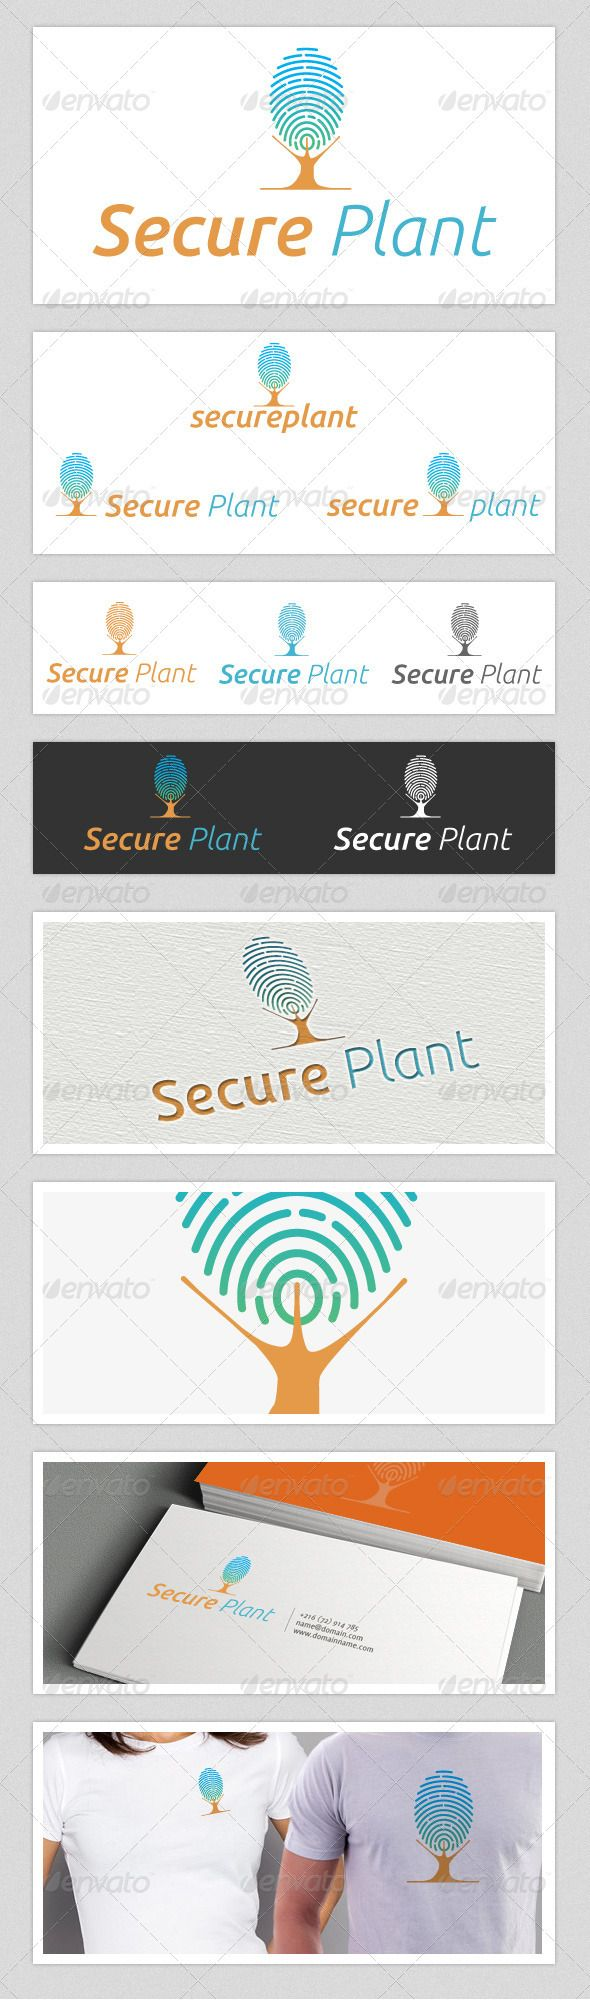 Secure Plant Finger Print Logo  #GraphicRiver         Secure Plant logo basically a logo with the concept of a tree with finger print. this mean some product or zone, area, factory, plant are secure. thumb print scan company and security provider can use this logo.   Font: Ubuntu Download: font.ubuntu /     Created: 15December12 GraphicsFilesIncluded: PhotoshopPSD #VectorEPS #AIIllustrator Layered: No MinimumAdobeCSVersion: CS Resolution: Resizable Tags: ThumbPrint #assured #creative…